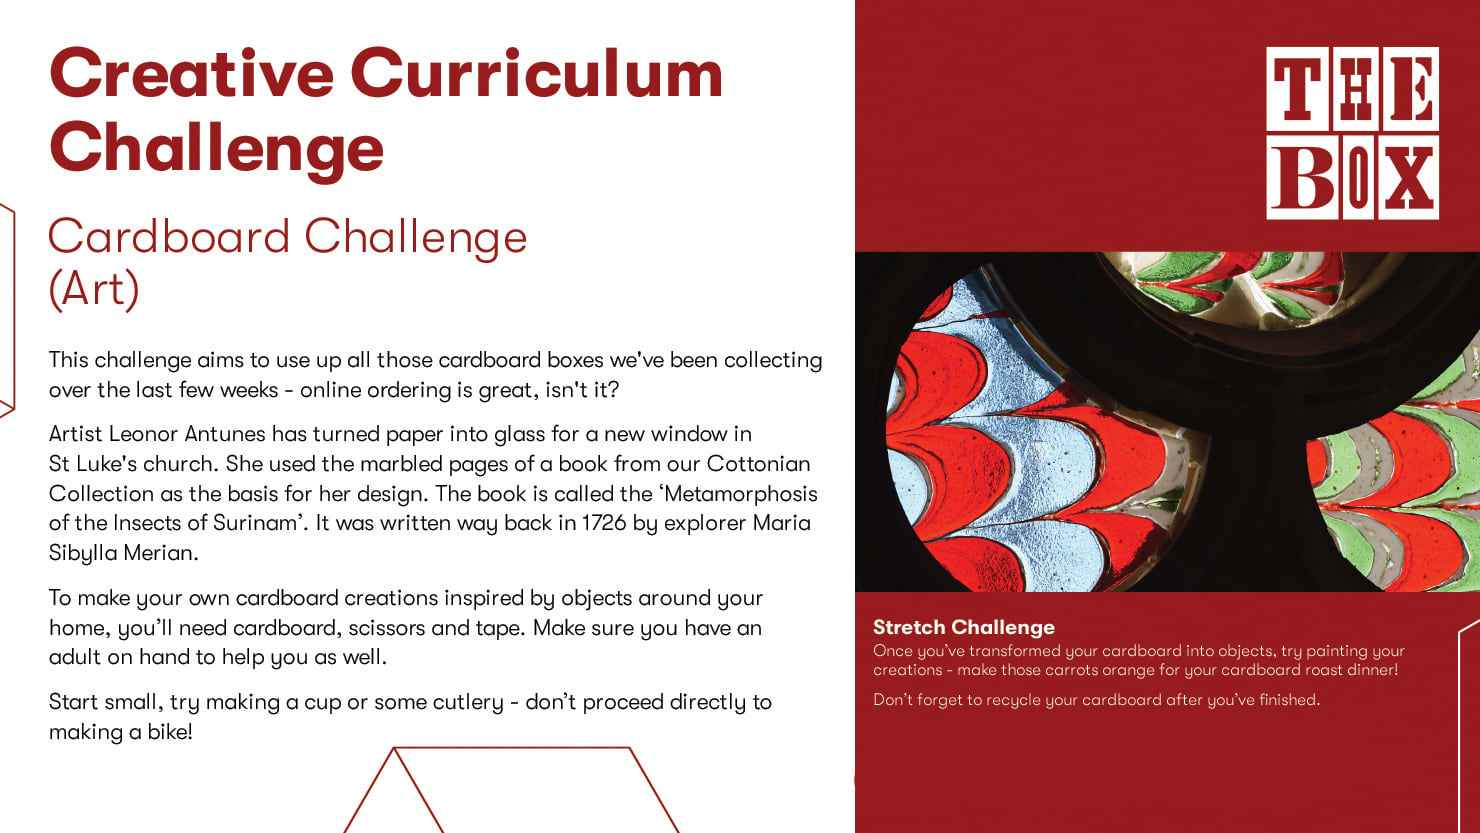 Graphic for The Box's cardboard curriculum challenge